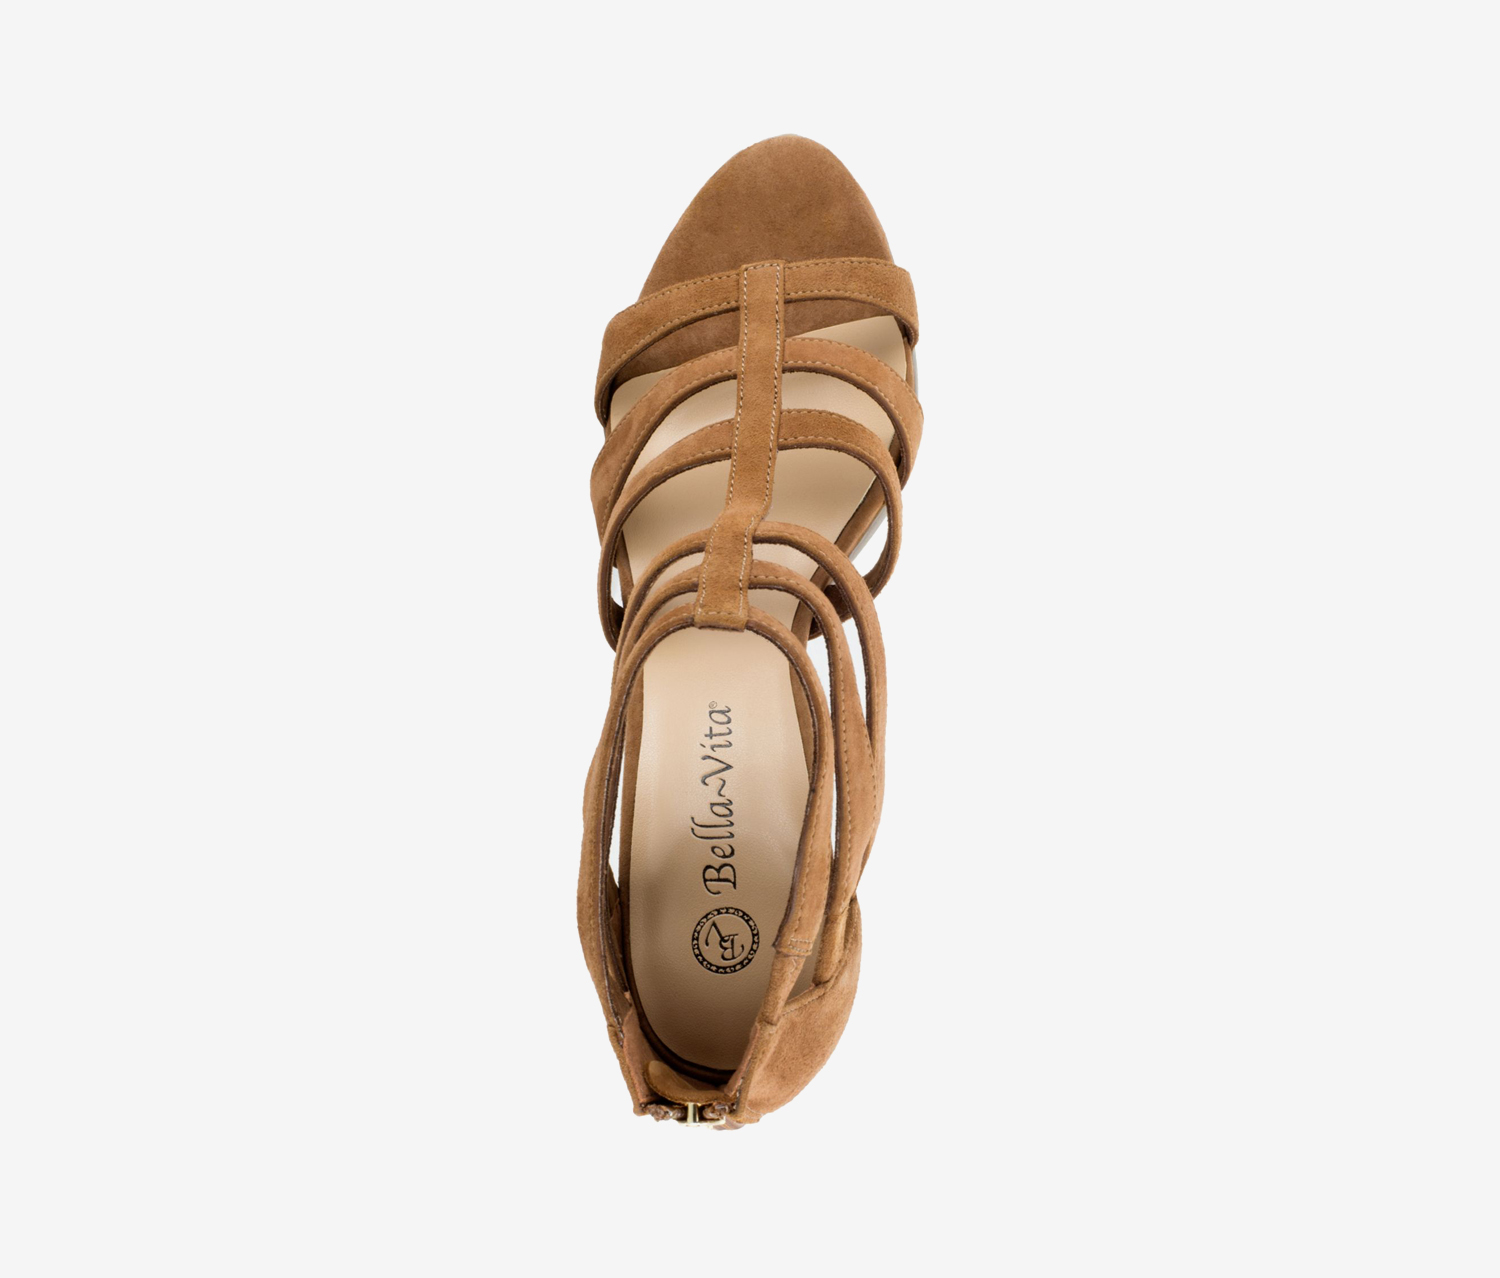 Details about  /Bella Vita Leah Strappy High Heel Sandals Biscuit Suede Leather NEW WITHOUT BOX